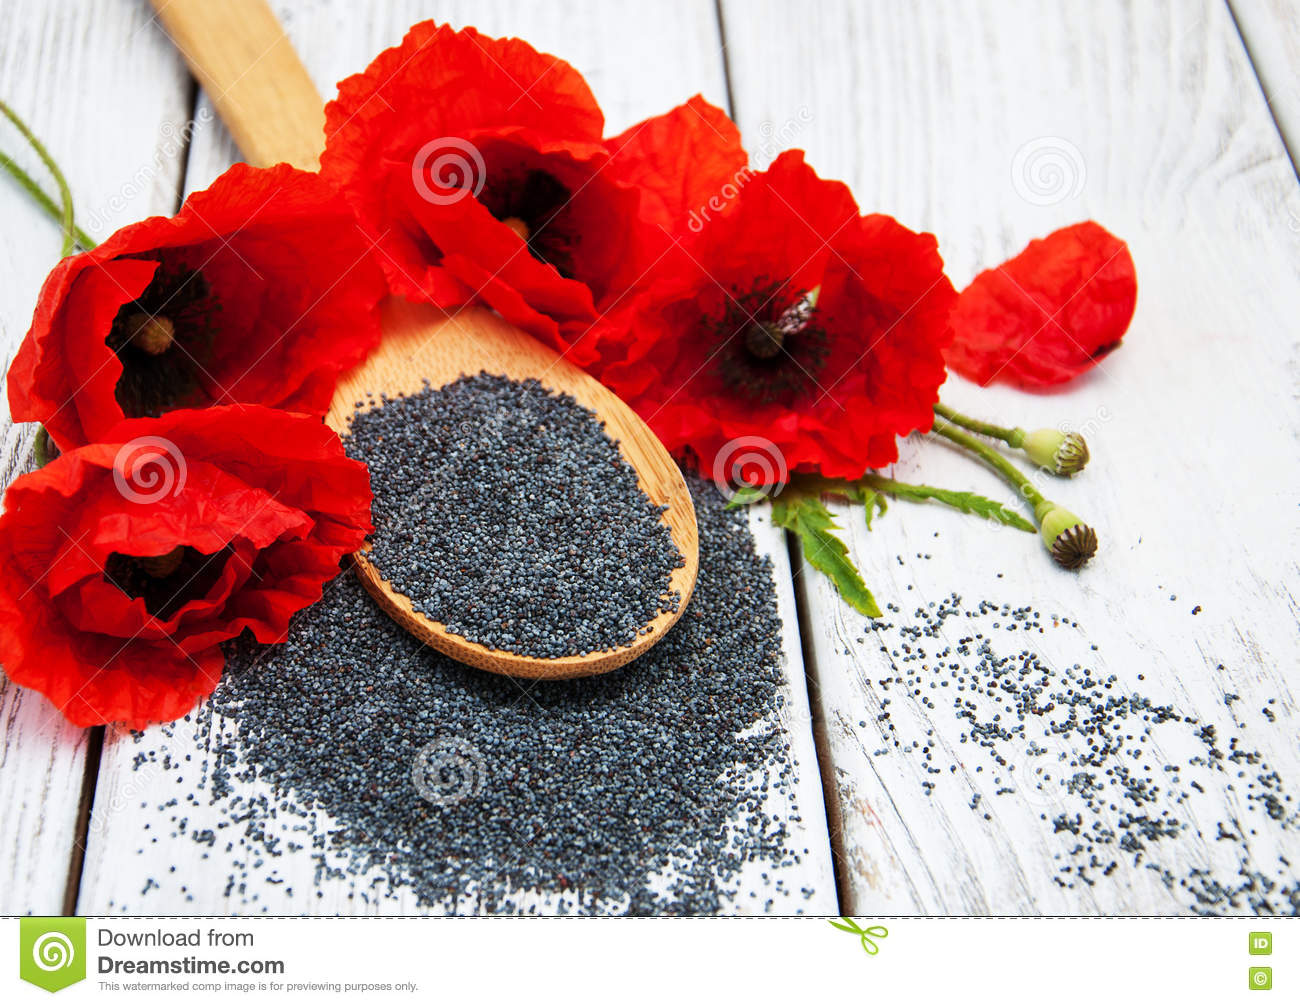 Poppy seeds and flowers stock image image of spoon plant 74230719 poppy seeds and flowers mightylinksfo